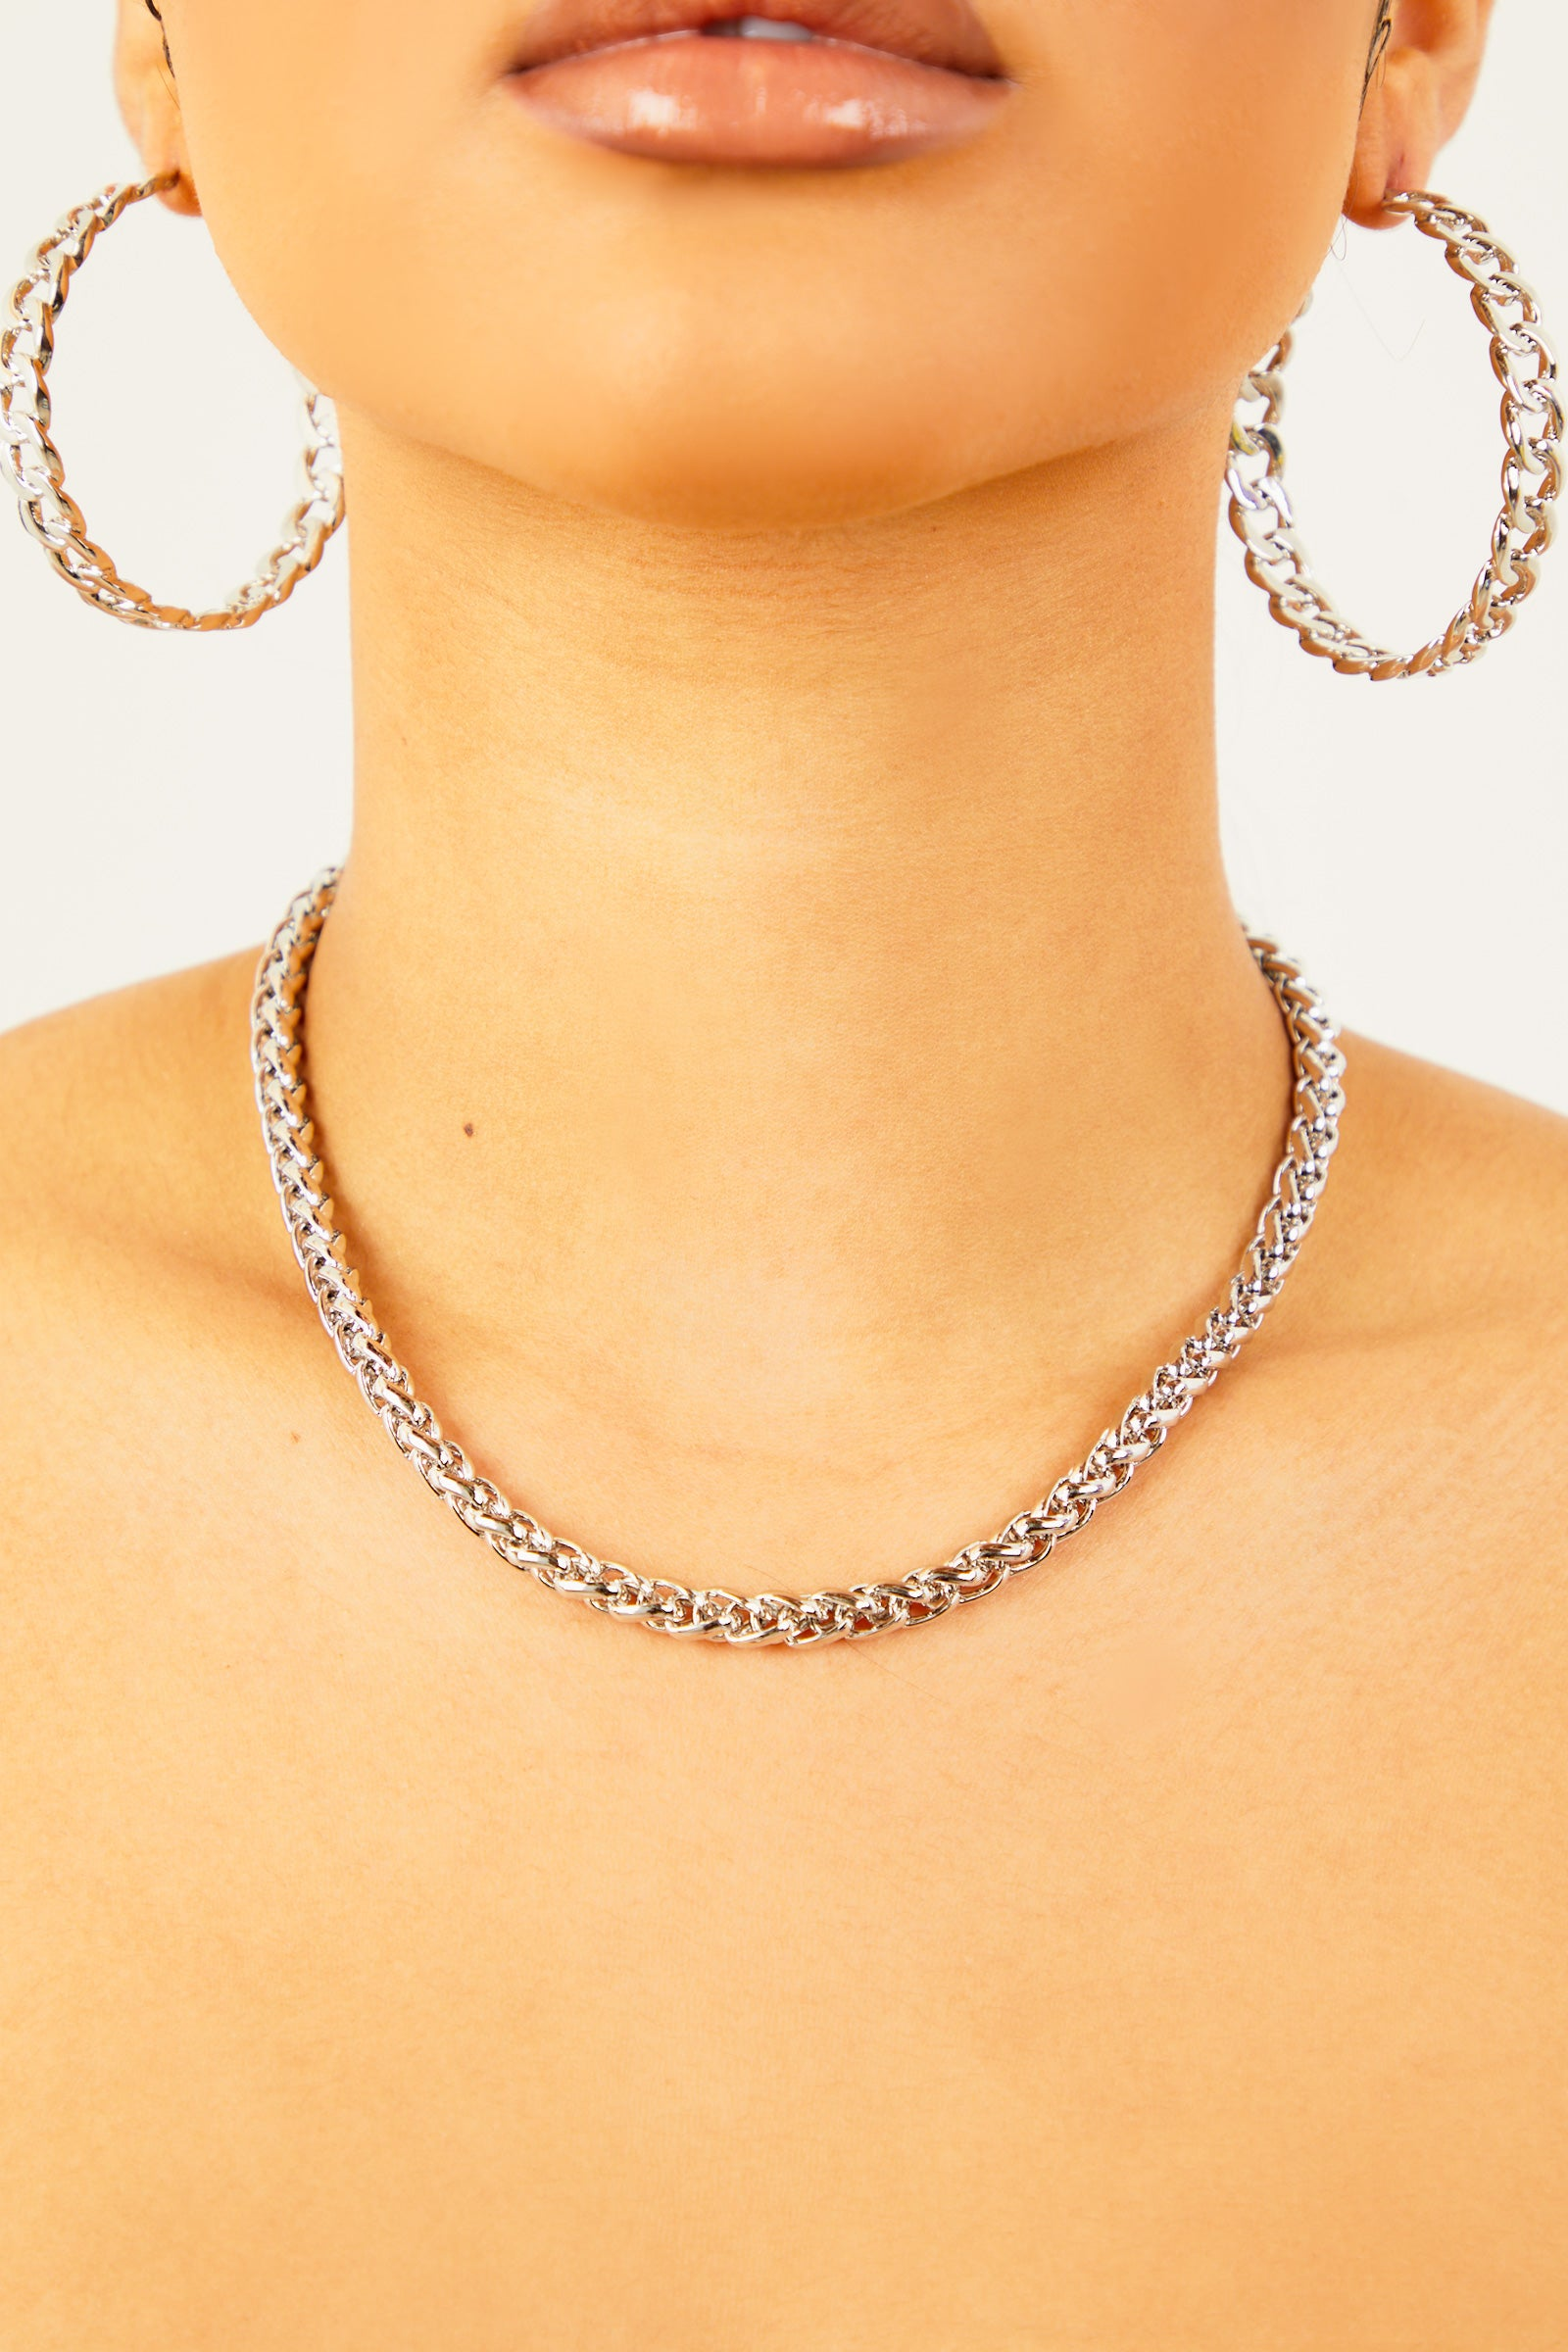 Silver Rope Solid Chain Necklace